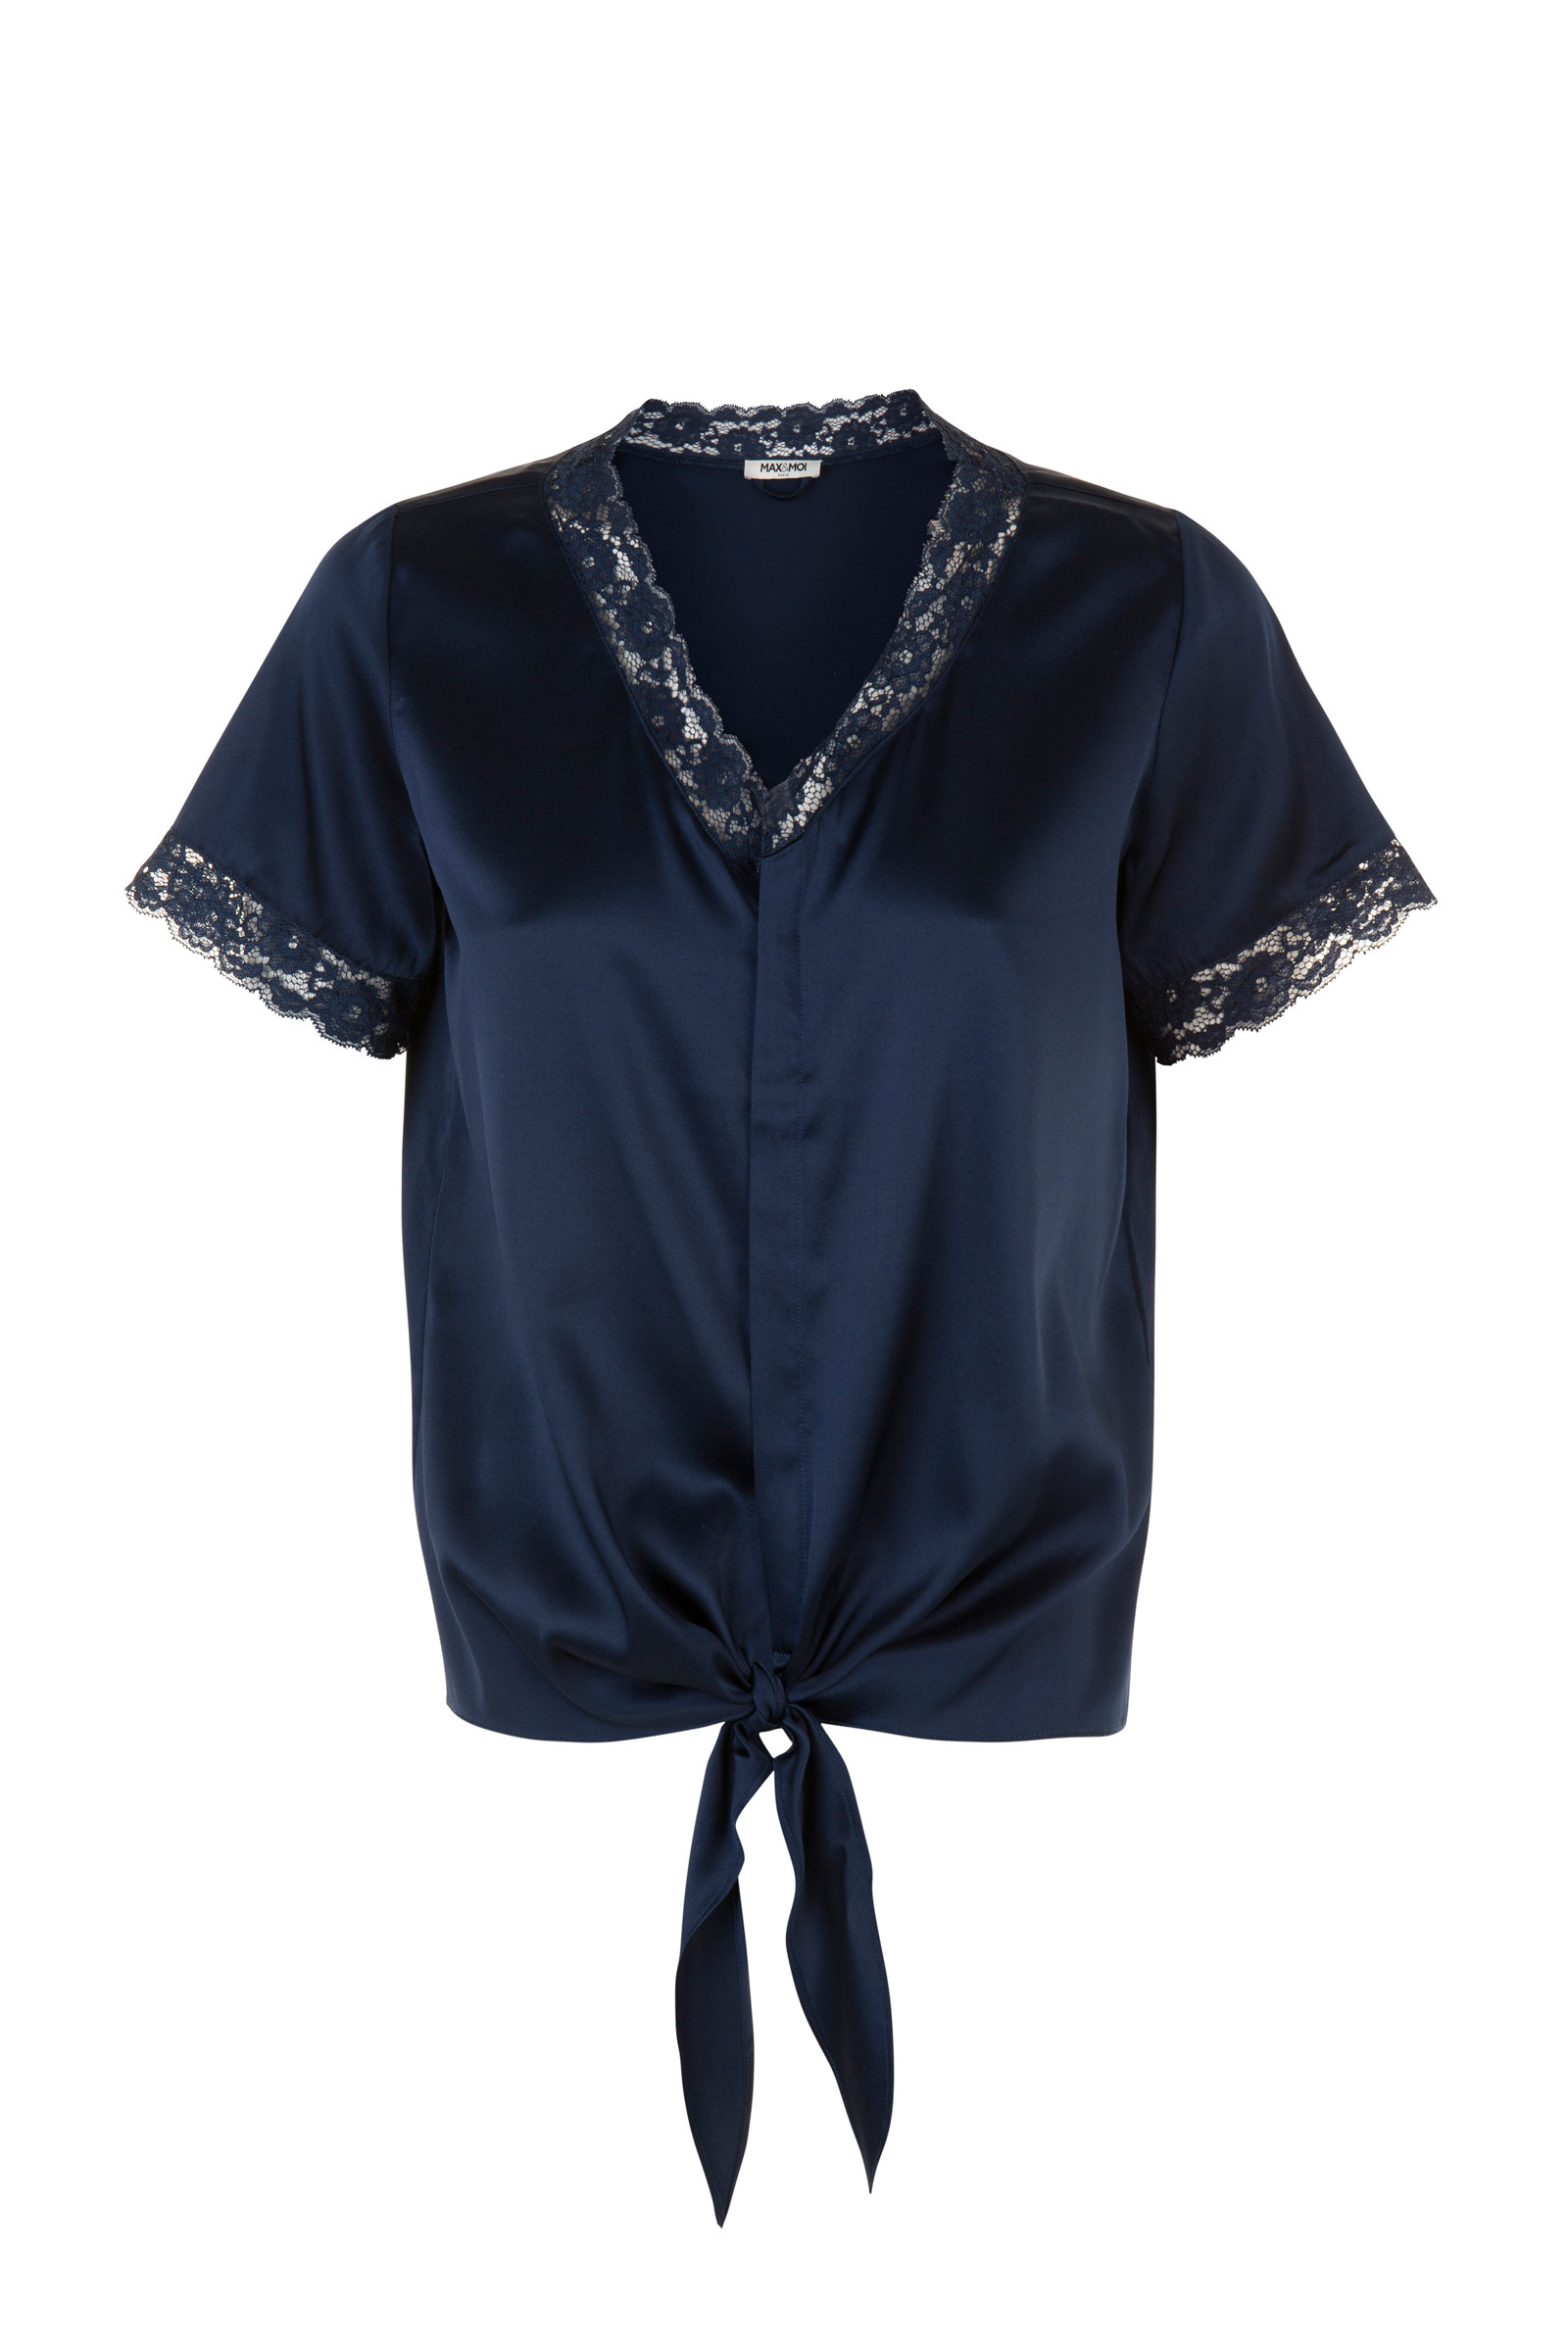 BLOUSE HARIANA NAVY